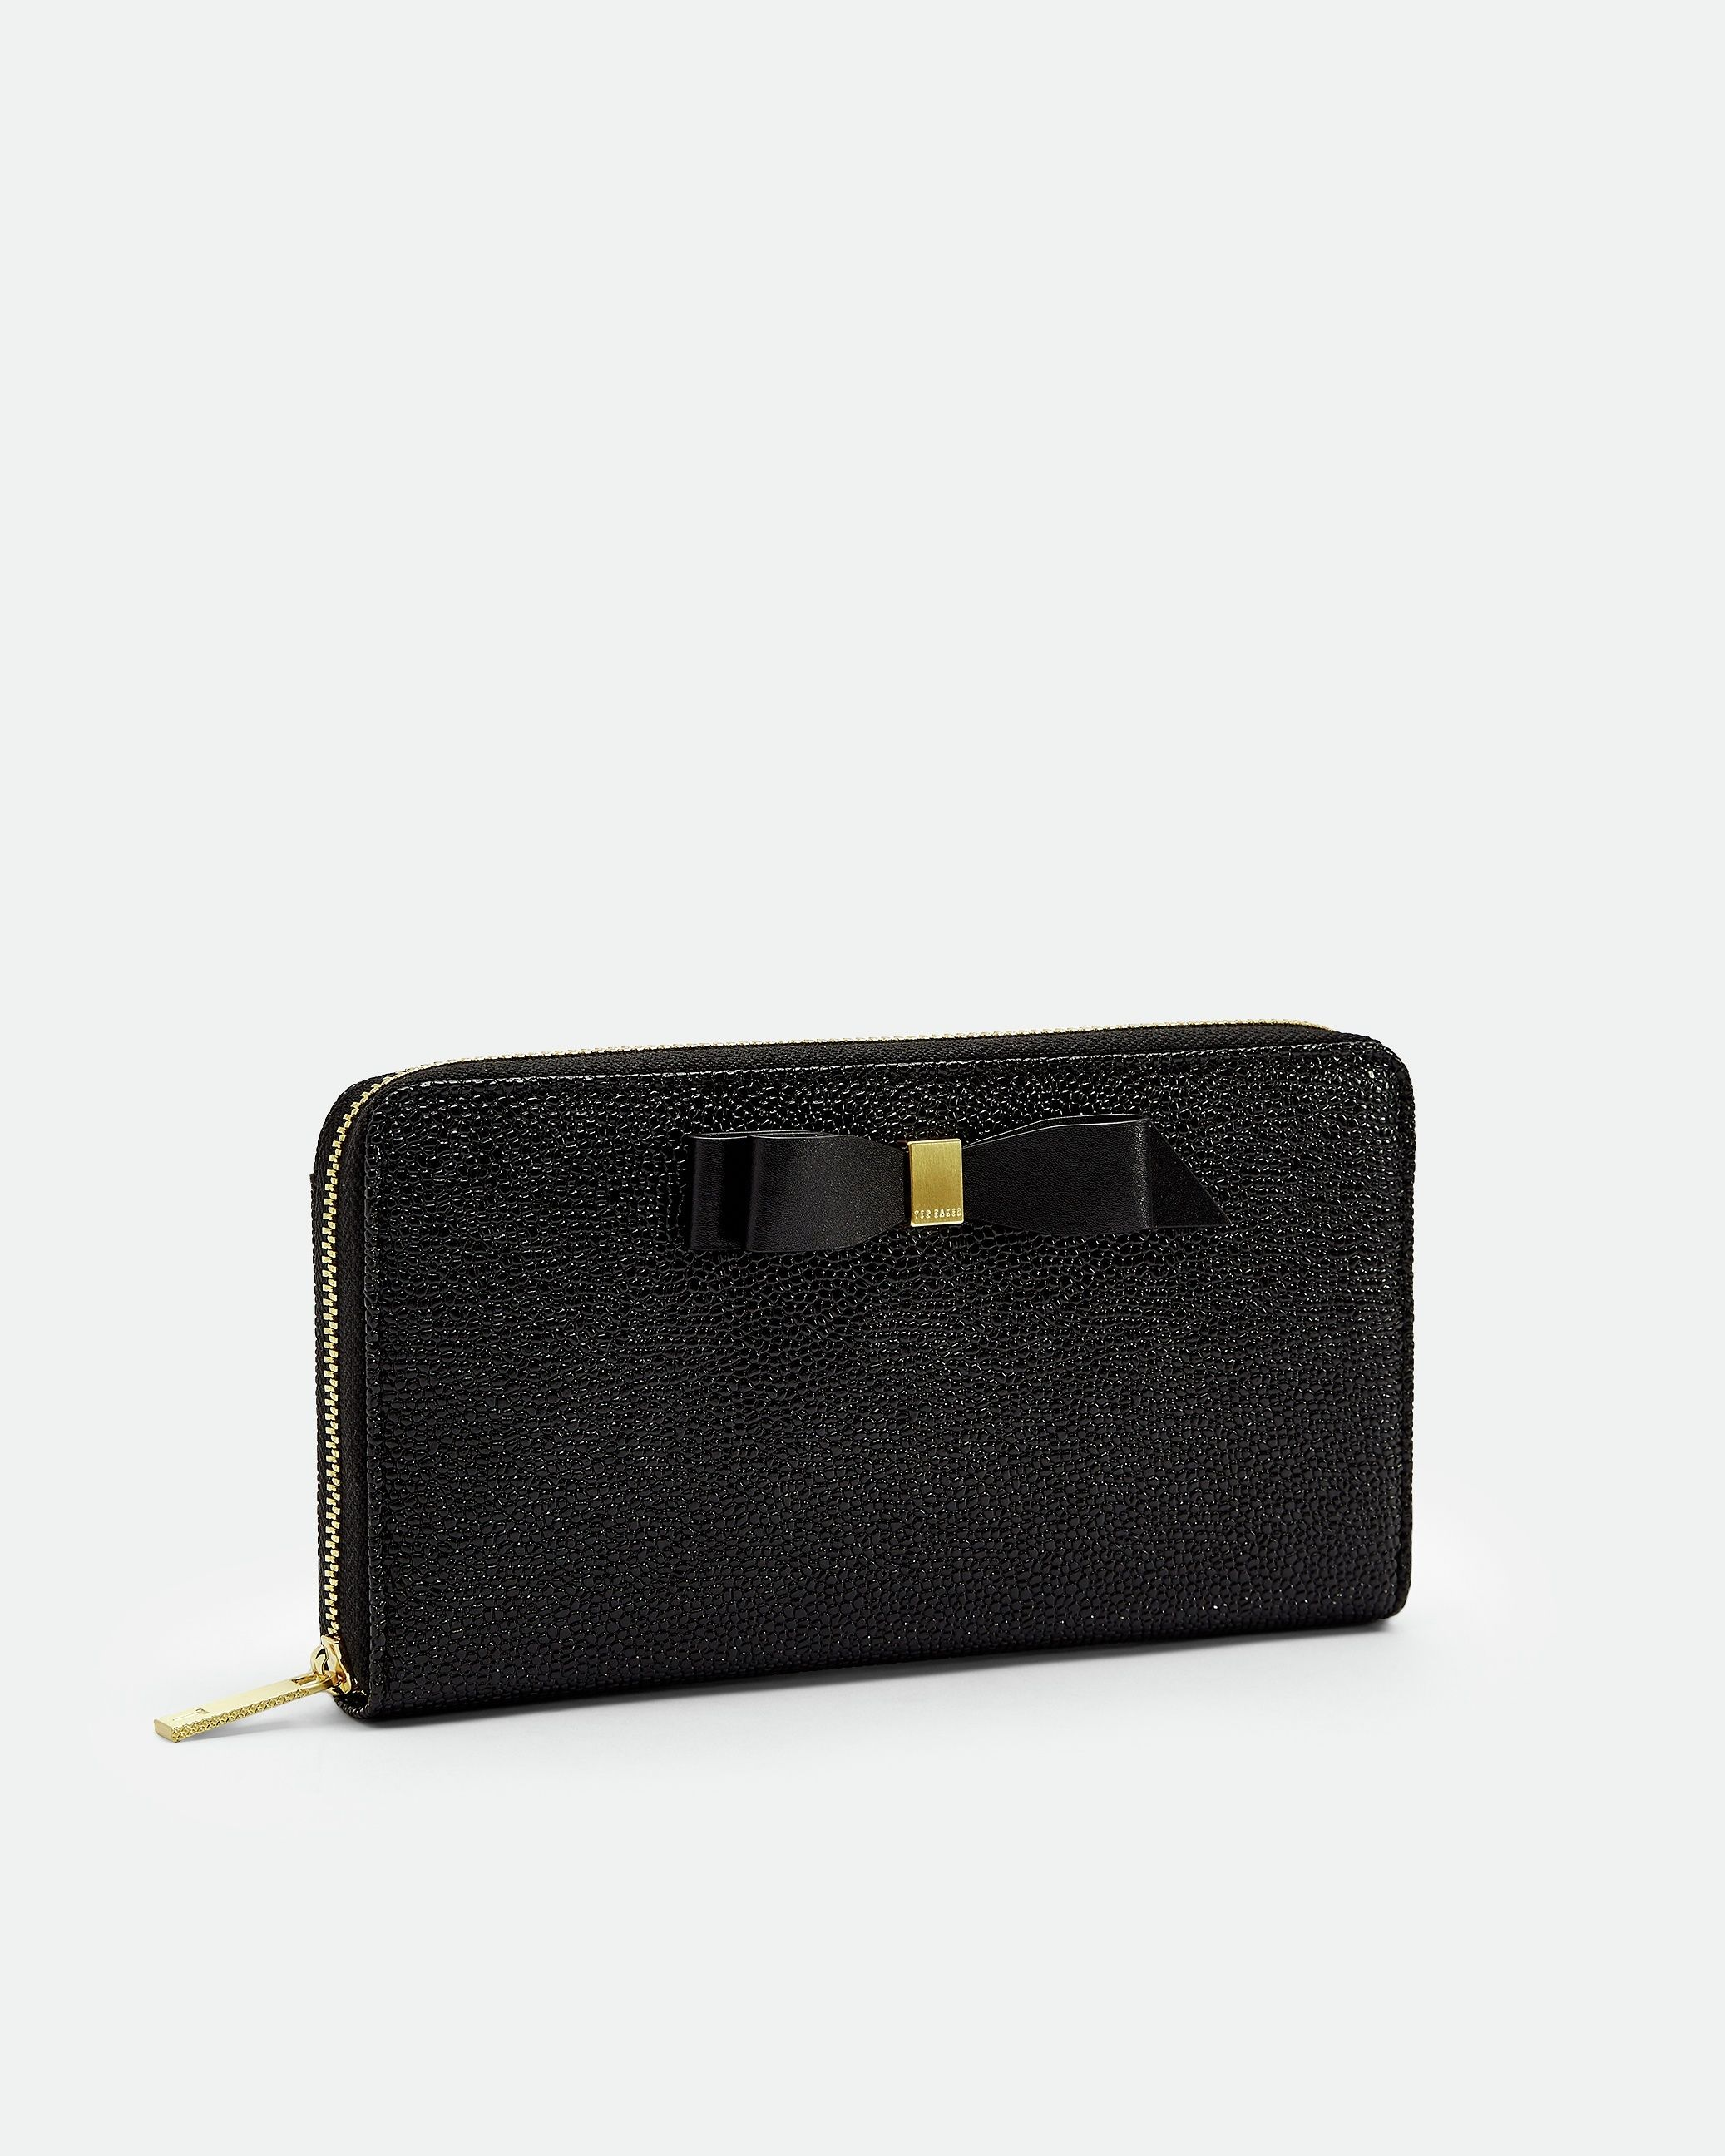 Ted Baker Aine Bow Leather Matinee Purse in Black